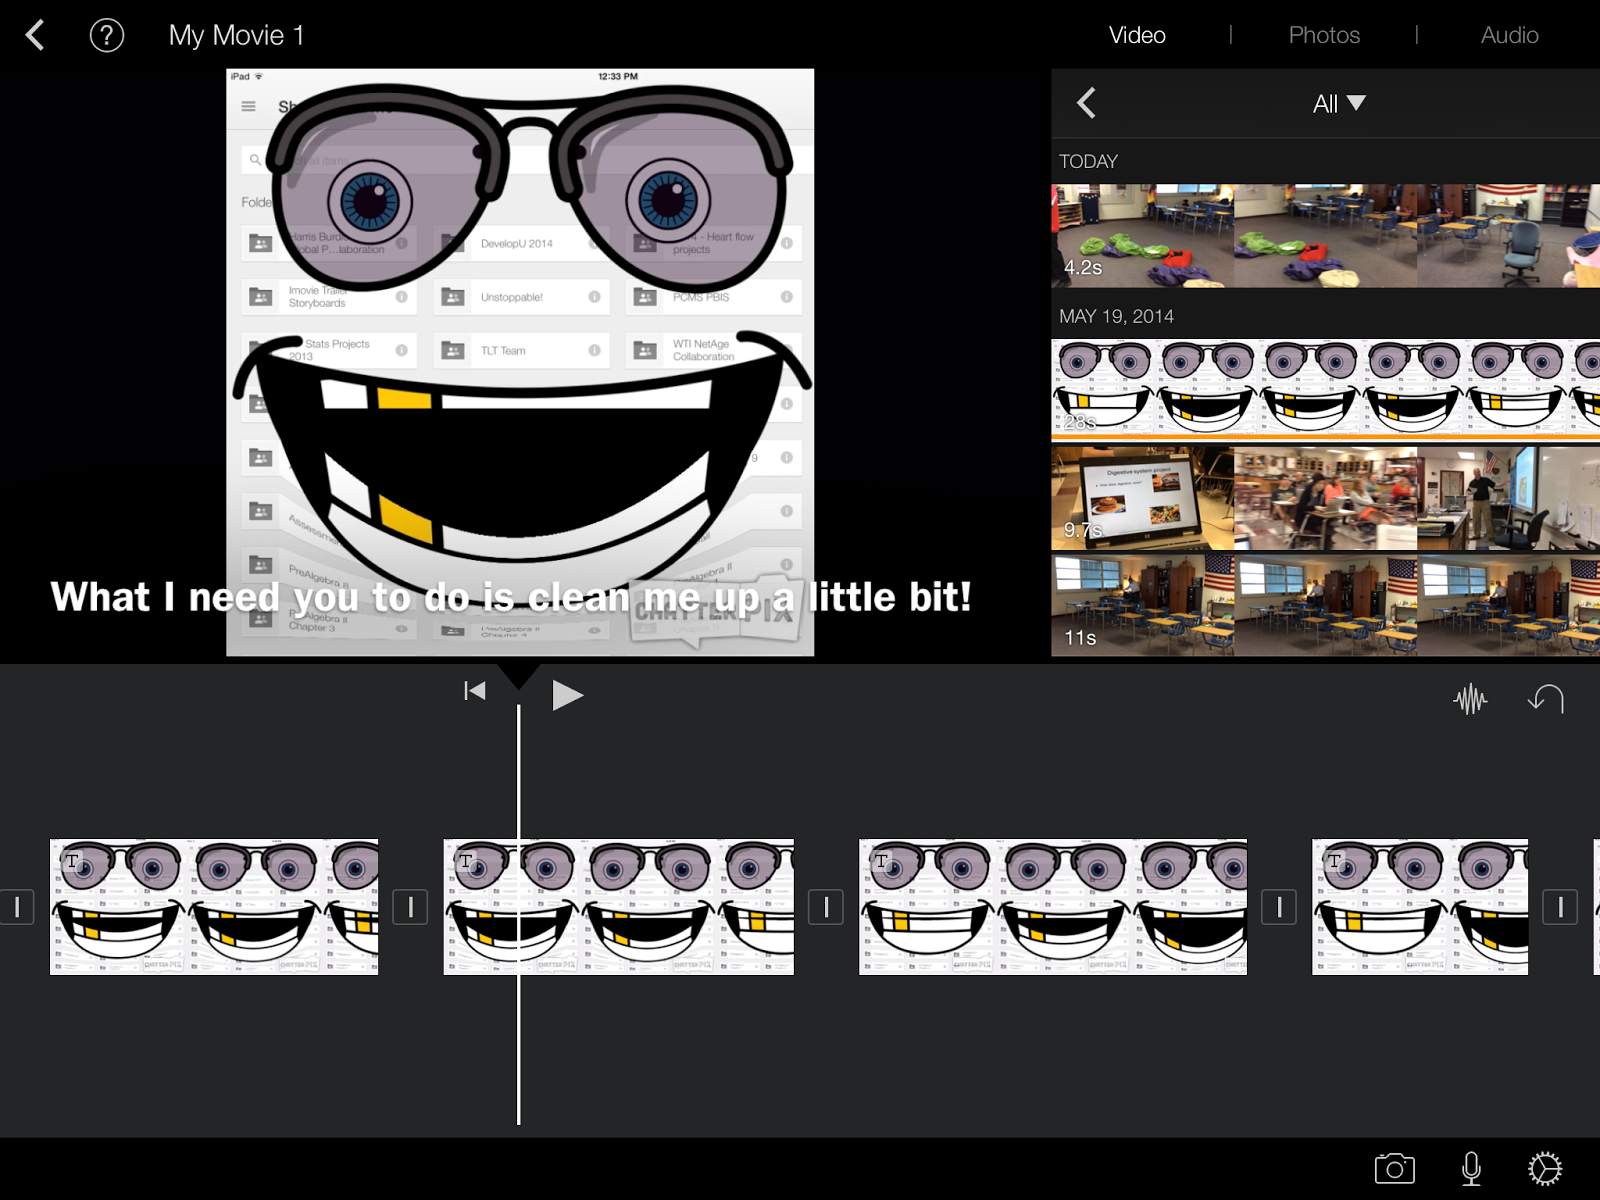 iPaddiction: iMovie On iPad - Adding Subtitles